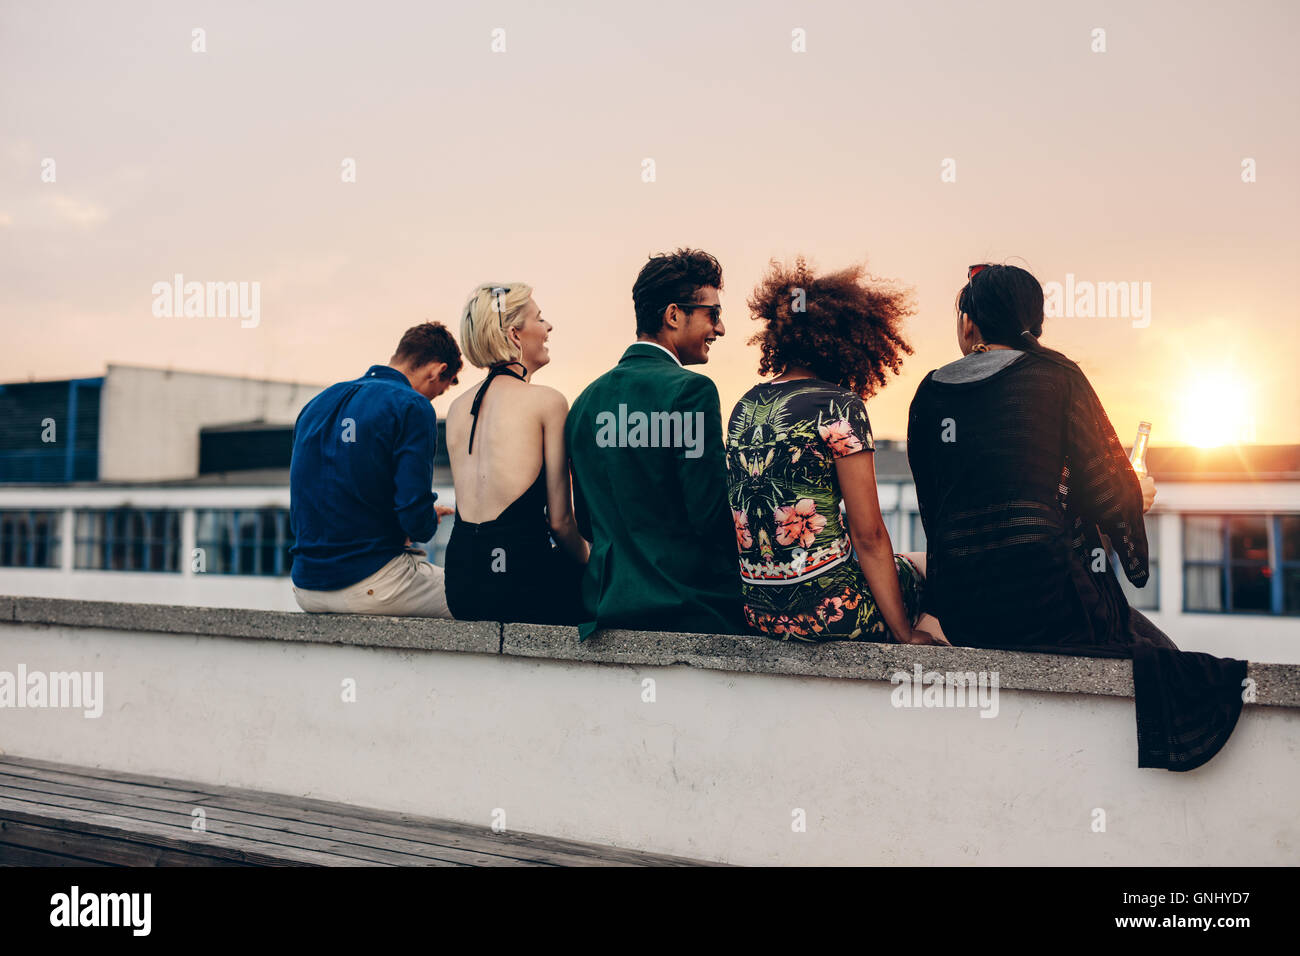 Rear view shot of young men and women sitting together on rooftop. Mixed race friends relaxing on terrace during Stock Photo